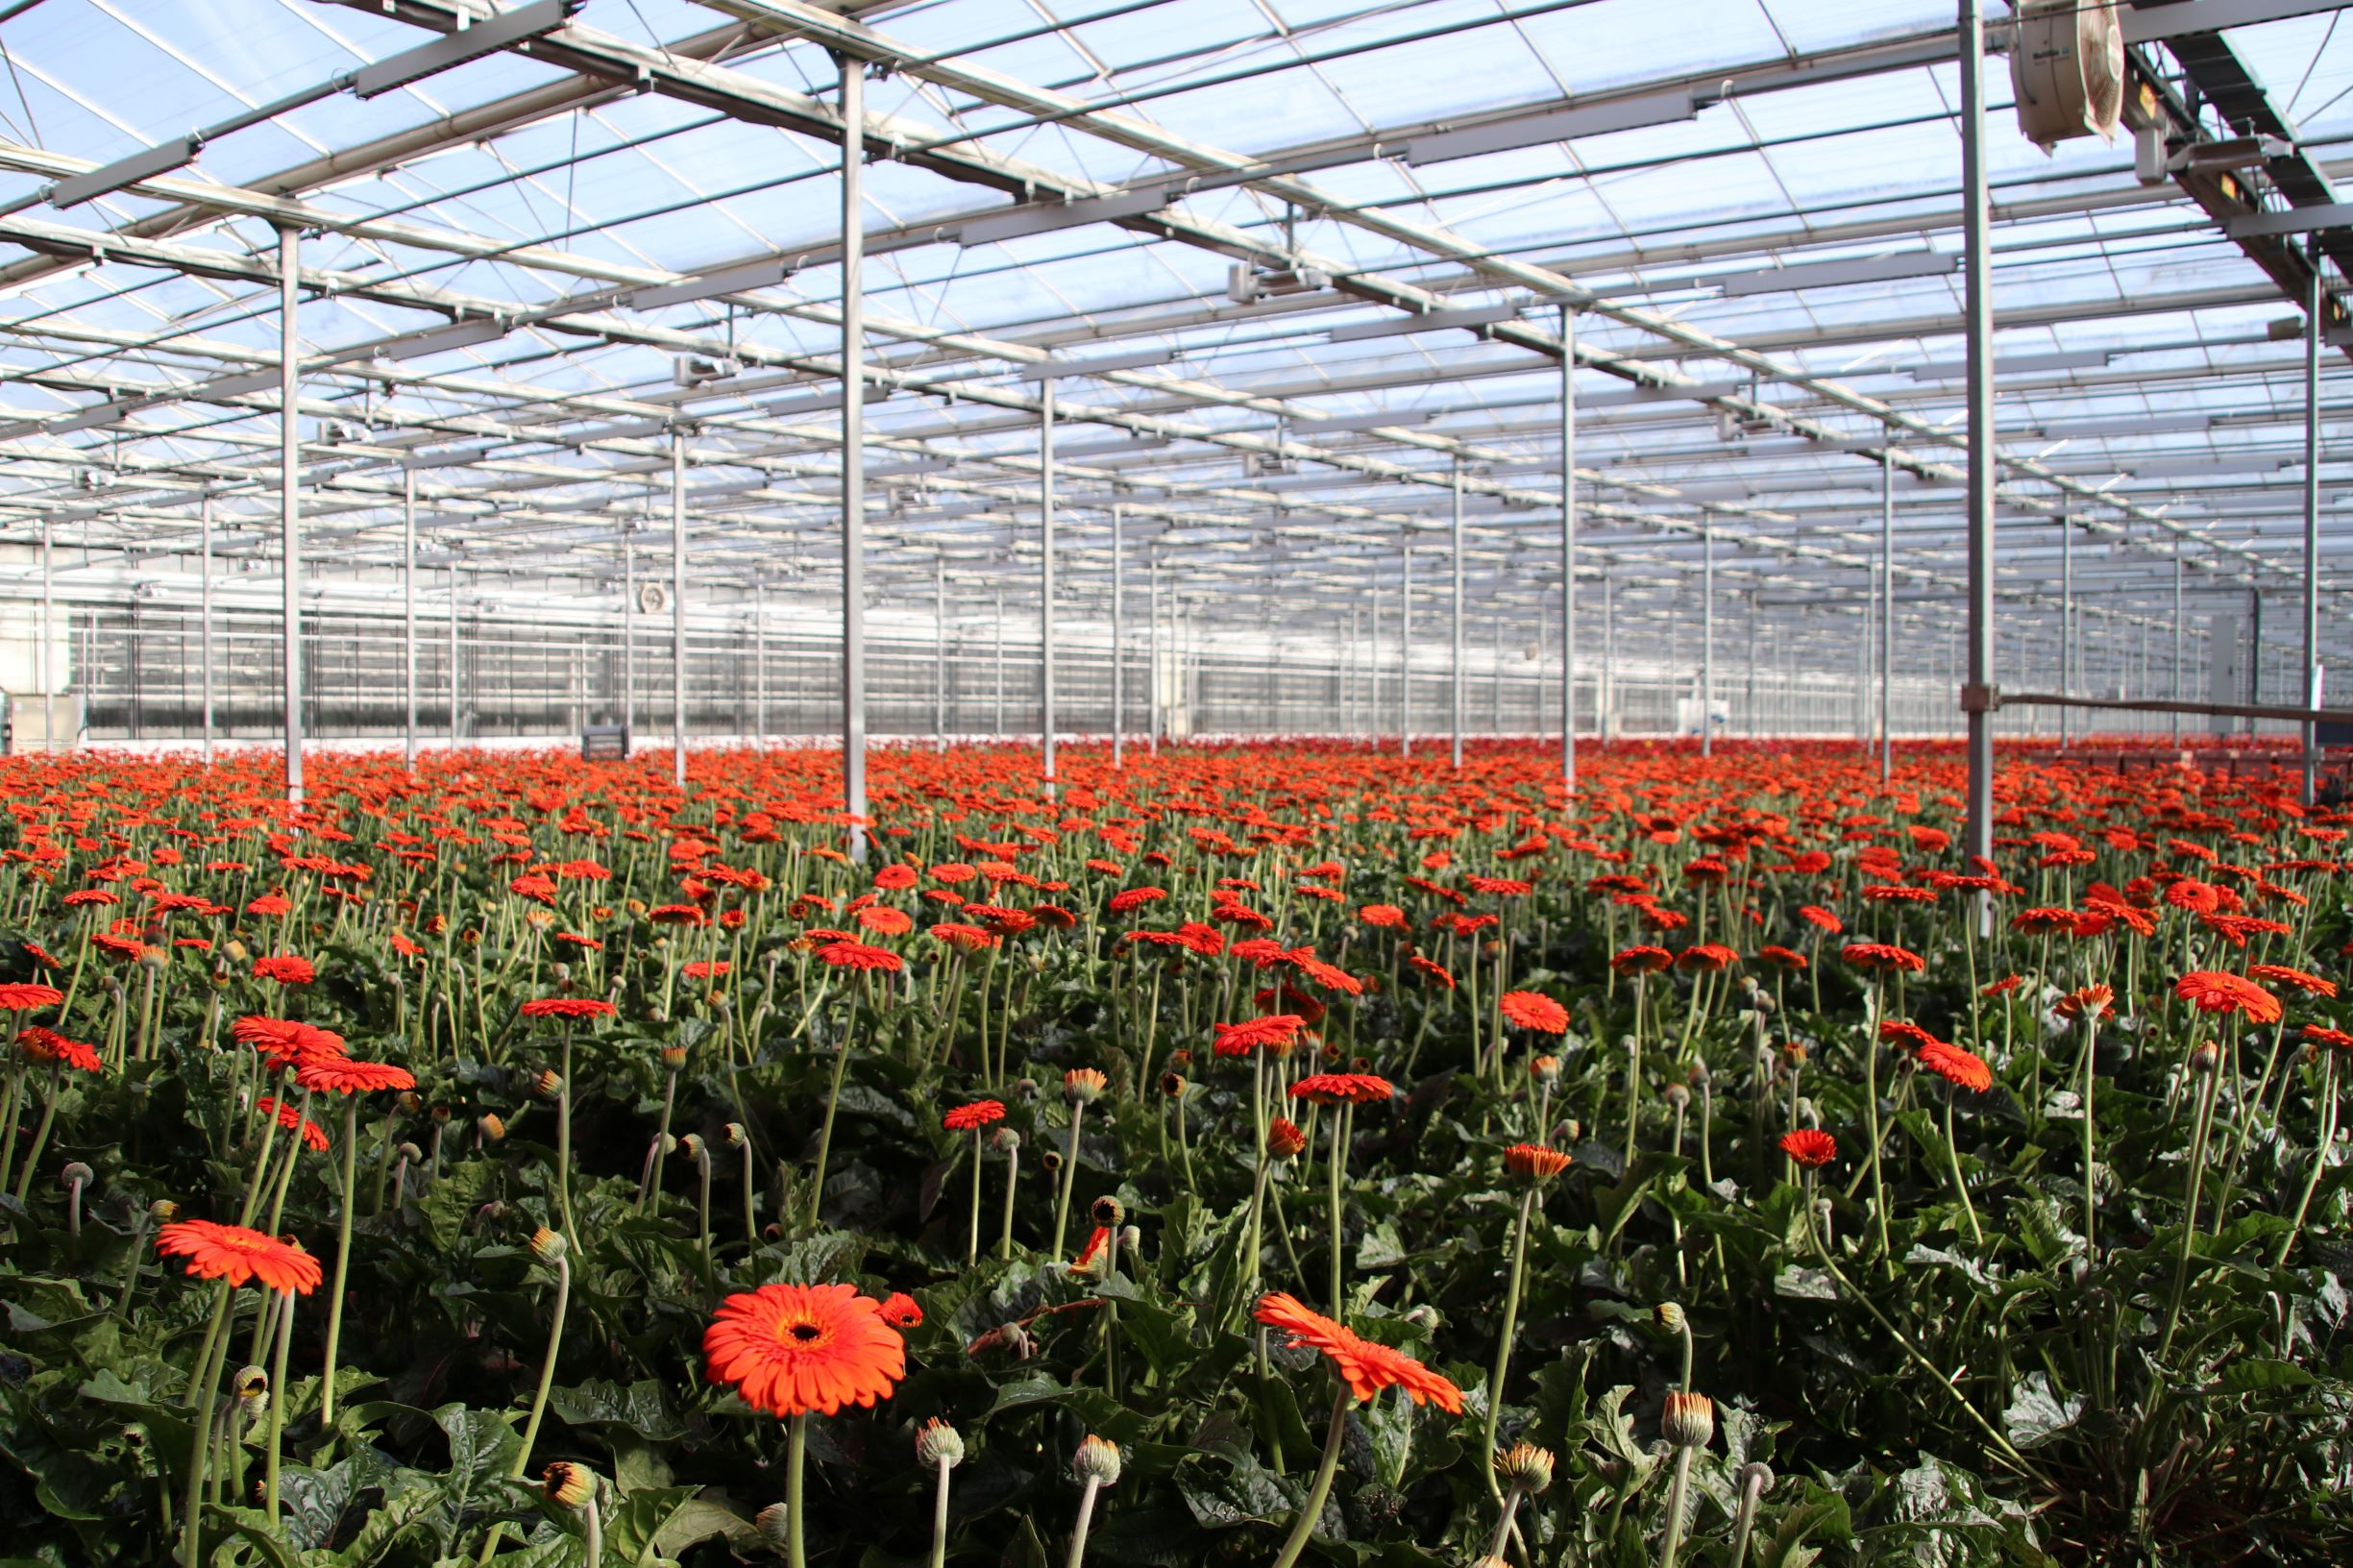 FLOWER Field-of-gerbera-flowers-in-a-greenhouse-in-Nieuwerkerk-944818216_5649x3766 (small)